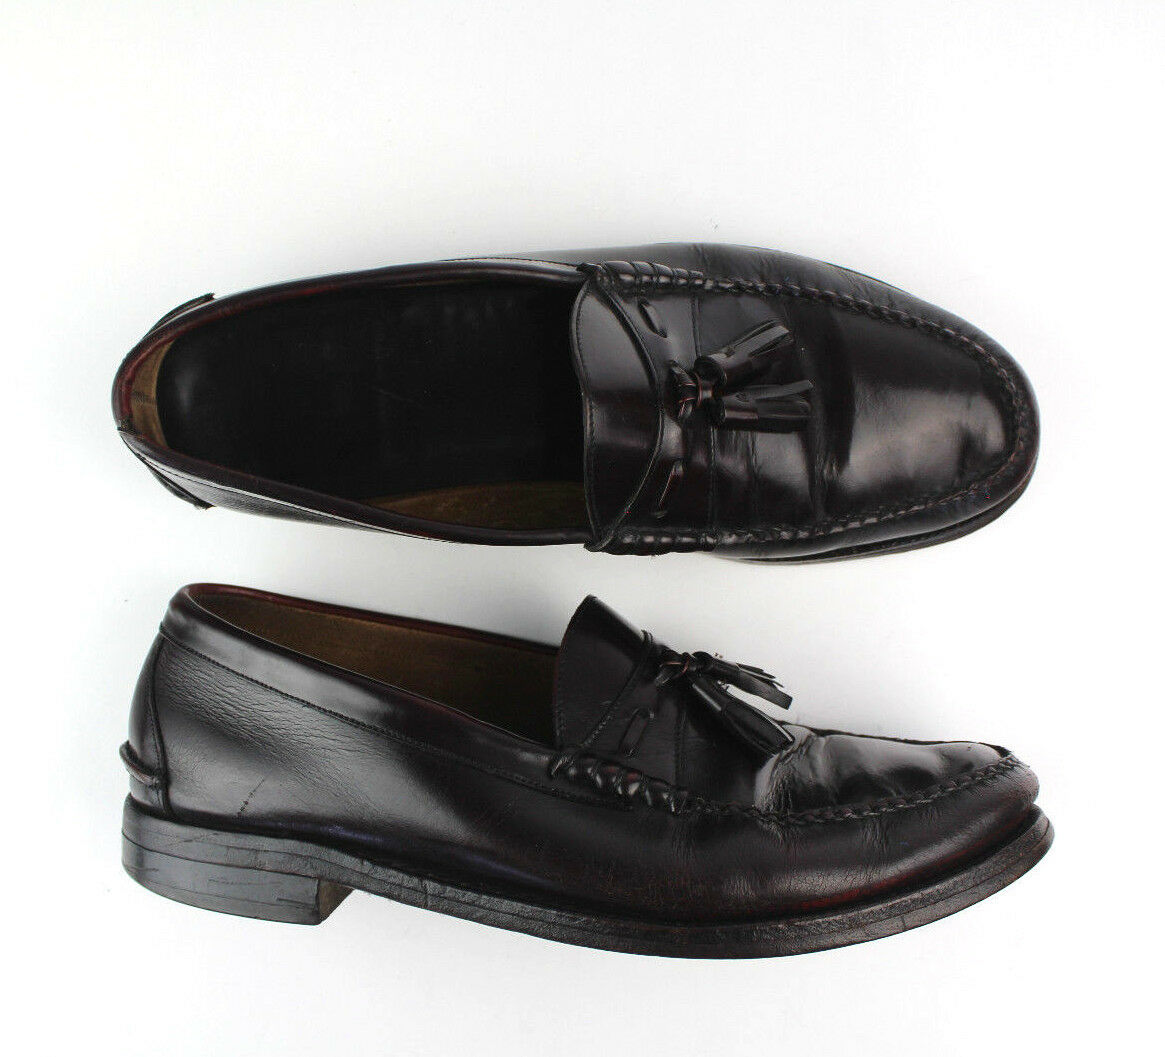 279 Johnston & Murphy Aristocraft Tassel Loafer Sz 12 Burgundy Leather